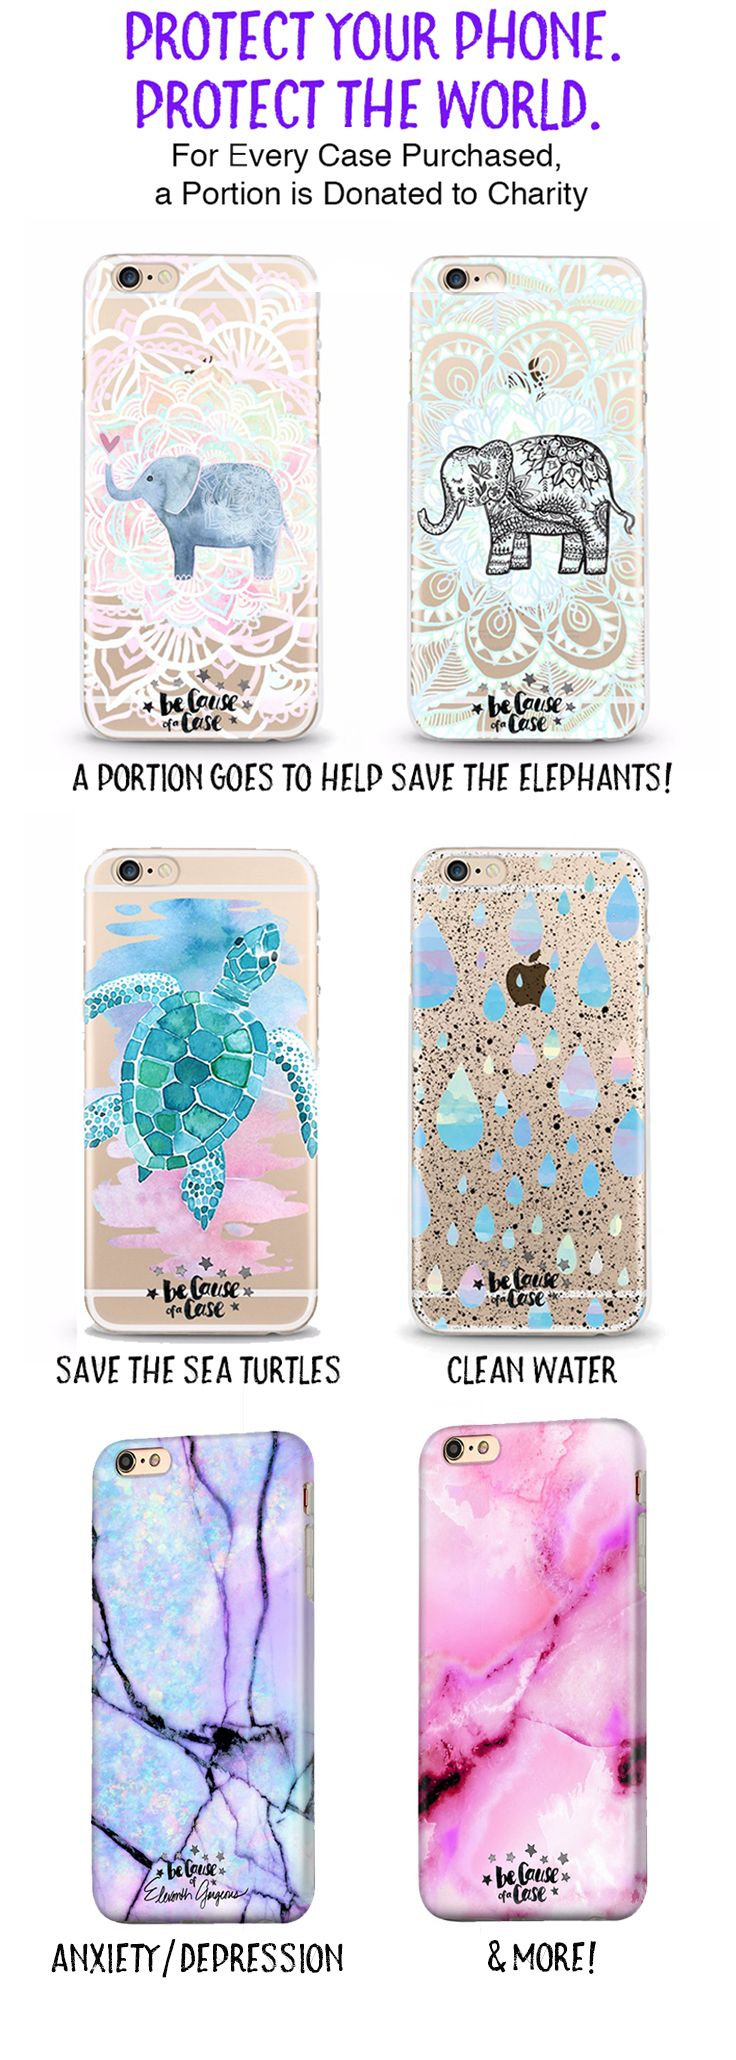 """Because of a Case"" donates to amazing causes with every purchase of a case! Whether you want to help save the sea turtles, provide clean water to those in need, or show your support for mental health, we have many different causes that you can help with every purchase of a case!"